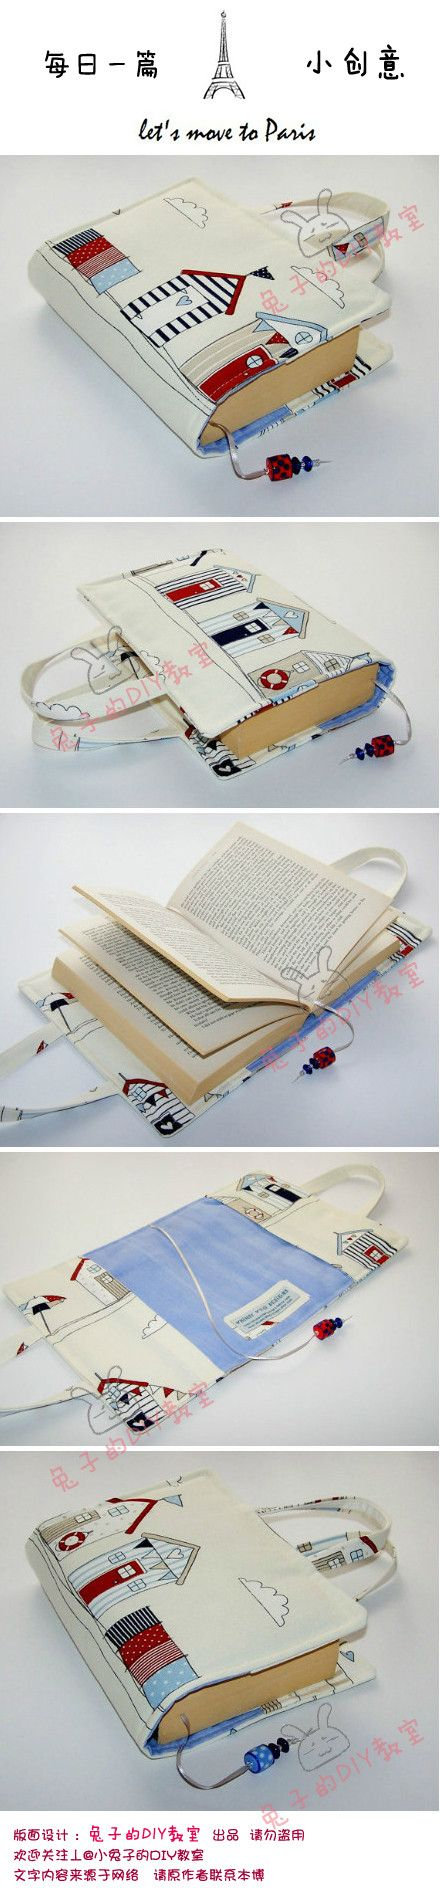 2-in-1 Bookcover & Carrying Case- So doing this for my bible! ^__^